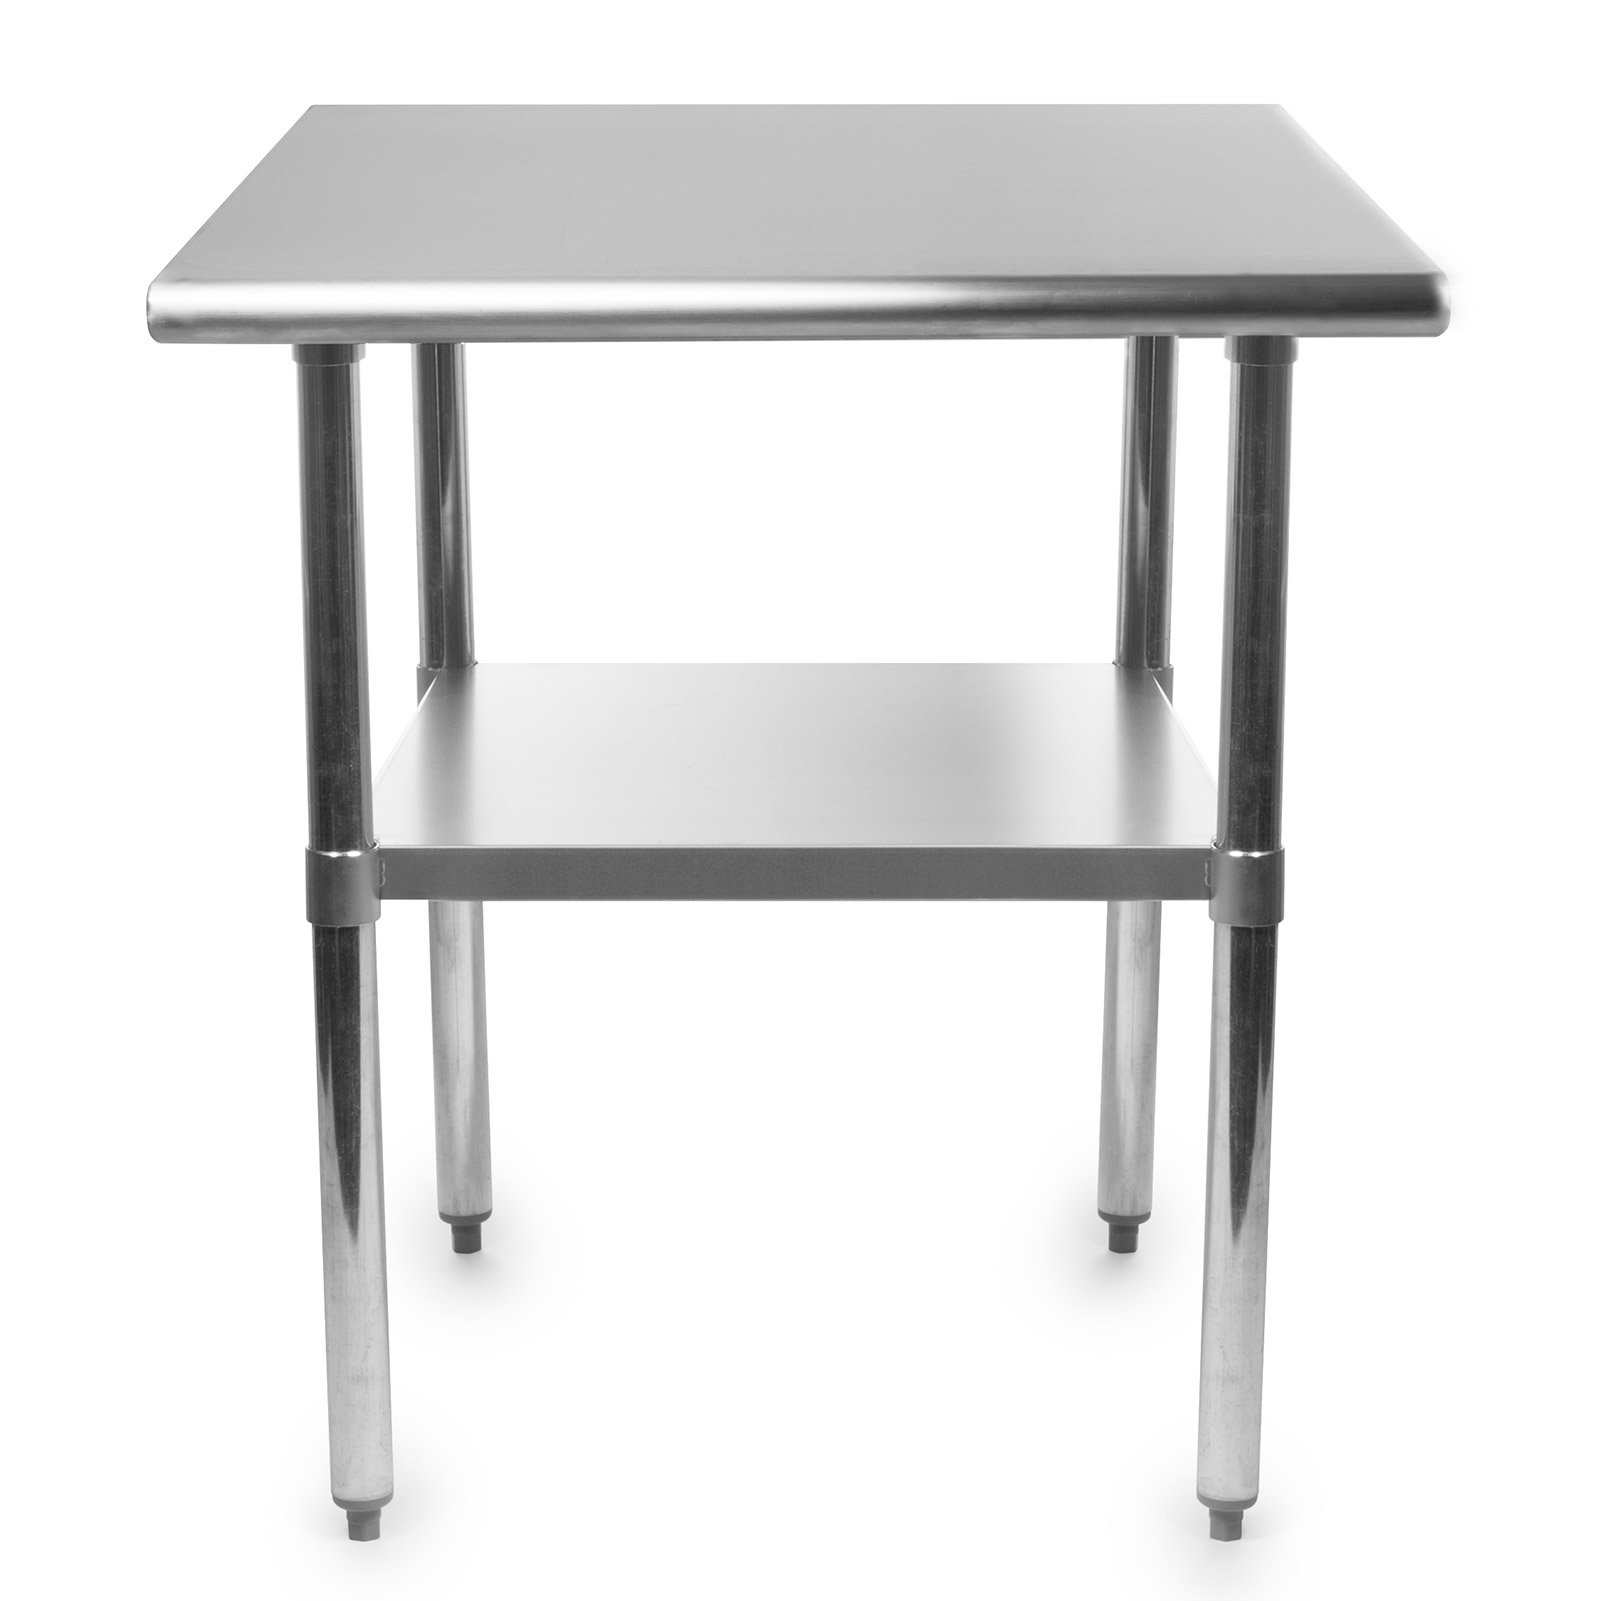 Gridmann Stainless Steel Commercial Kitchen Prep & Work Table - 36 in. x 24 in. by Gridmann (Image #2)